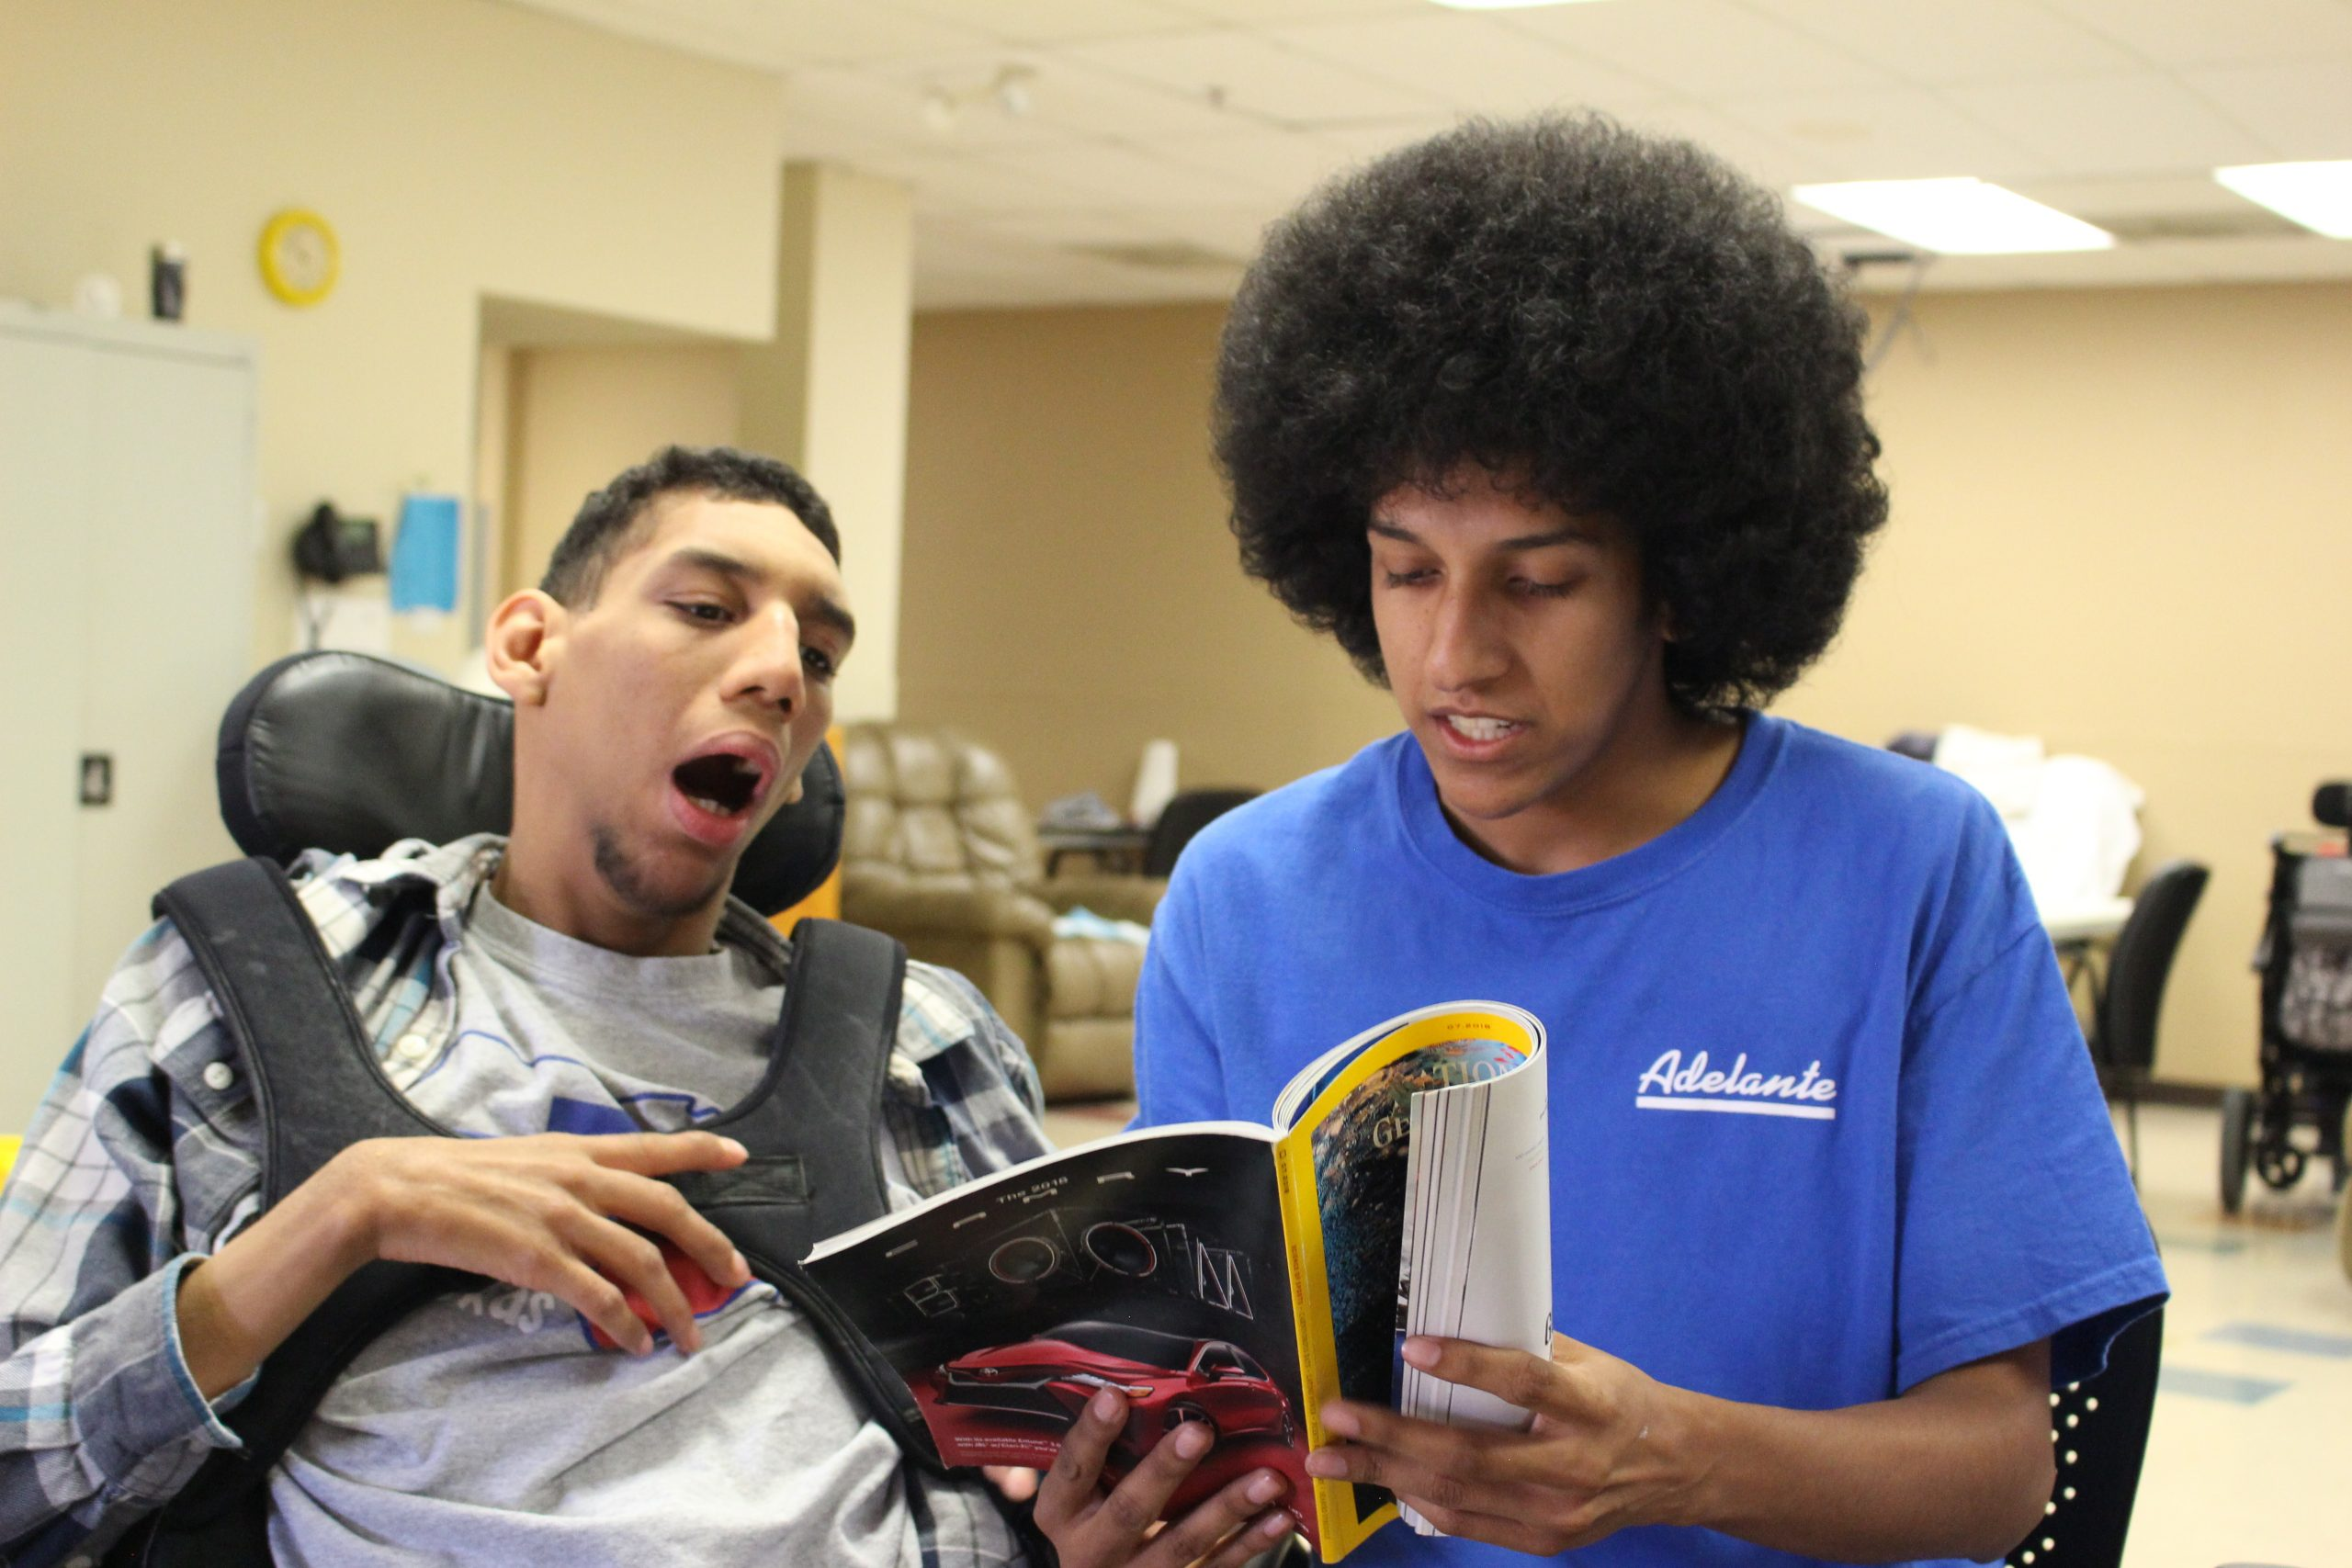 Two young men are sitting together. One is a direct support staff member. He's sitting next to his client and reading National Geographic to him. His client uses a wheelchair. The man who is an Adelante client reads with him.